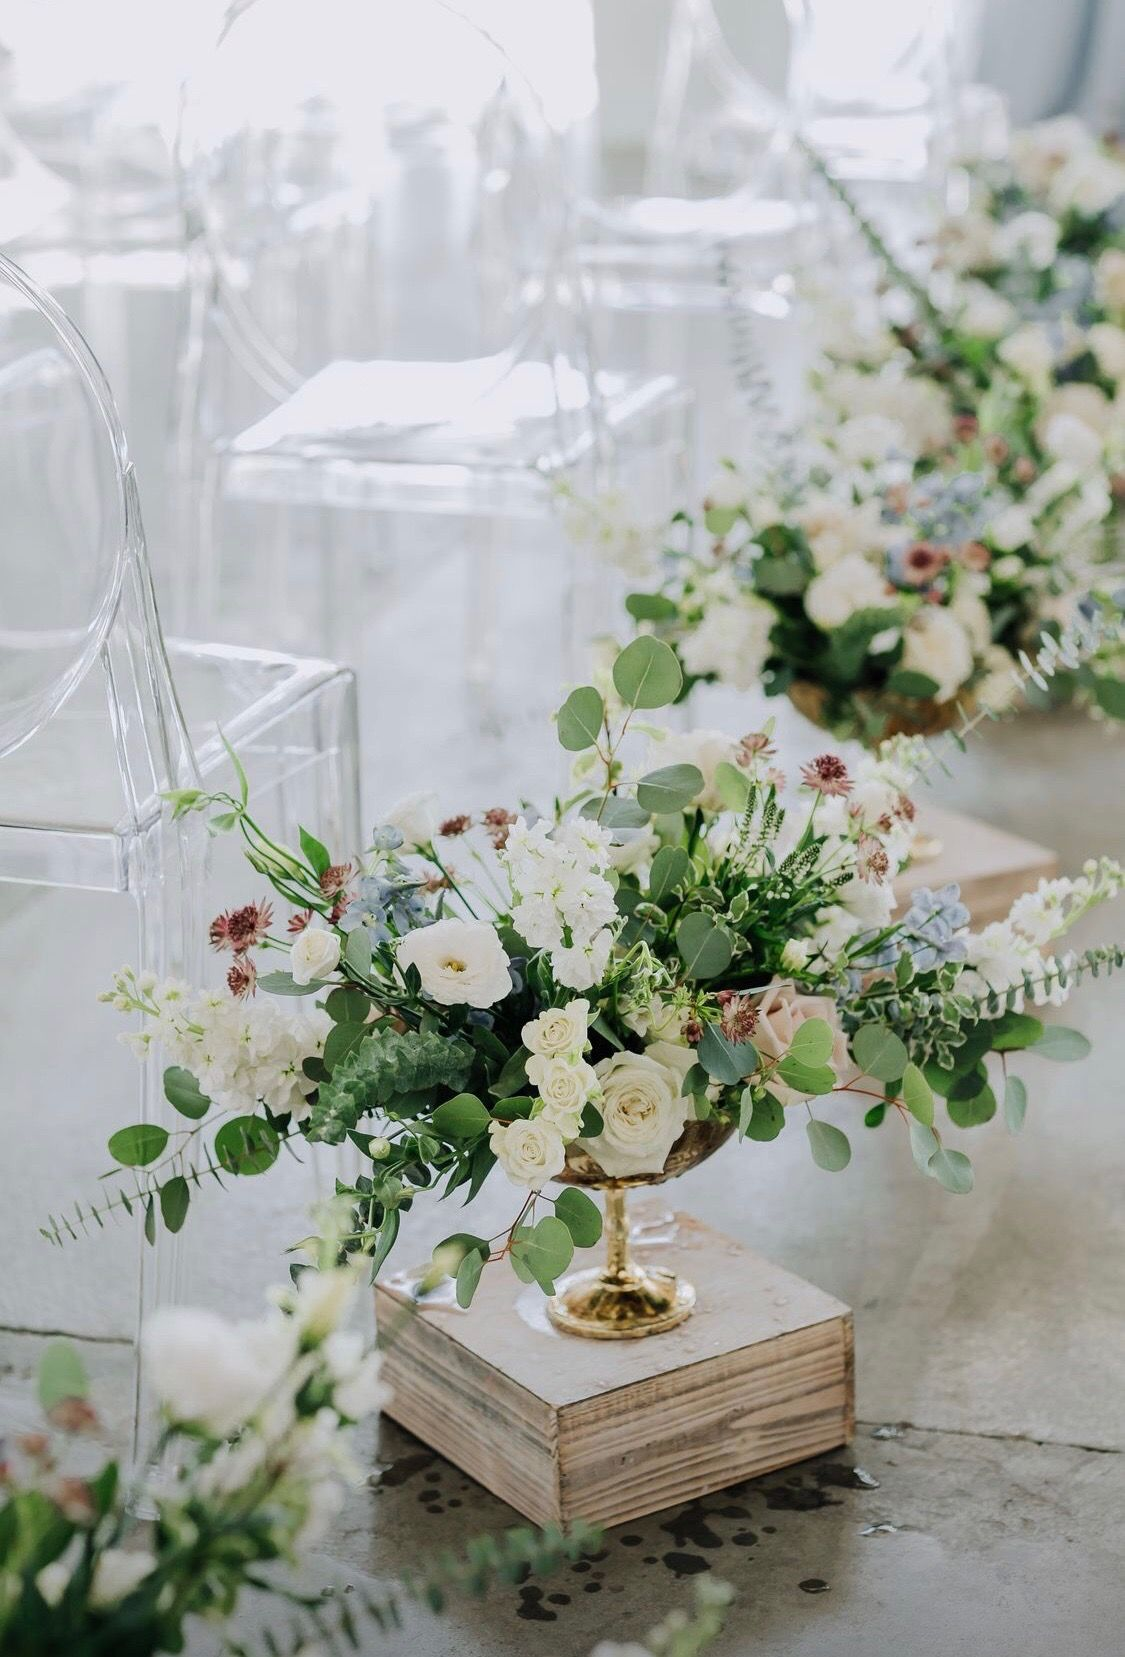 Pin by Ashleigh Fields on Wedding time! Industrial